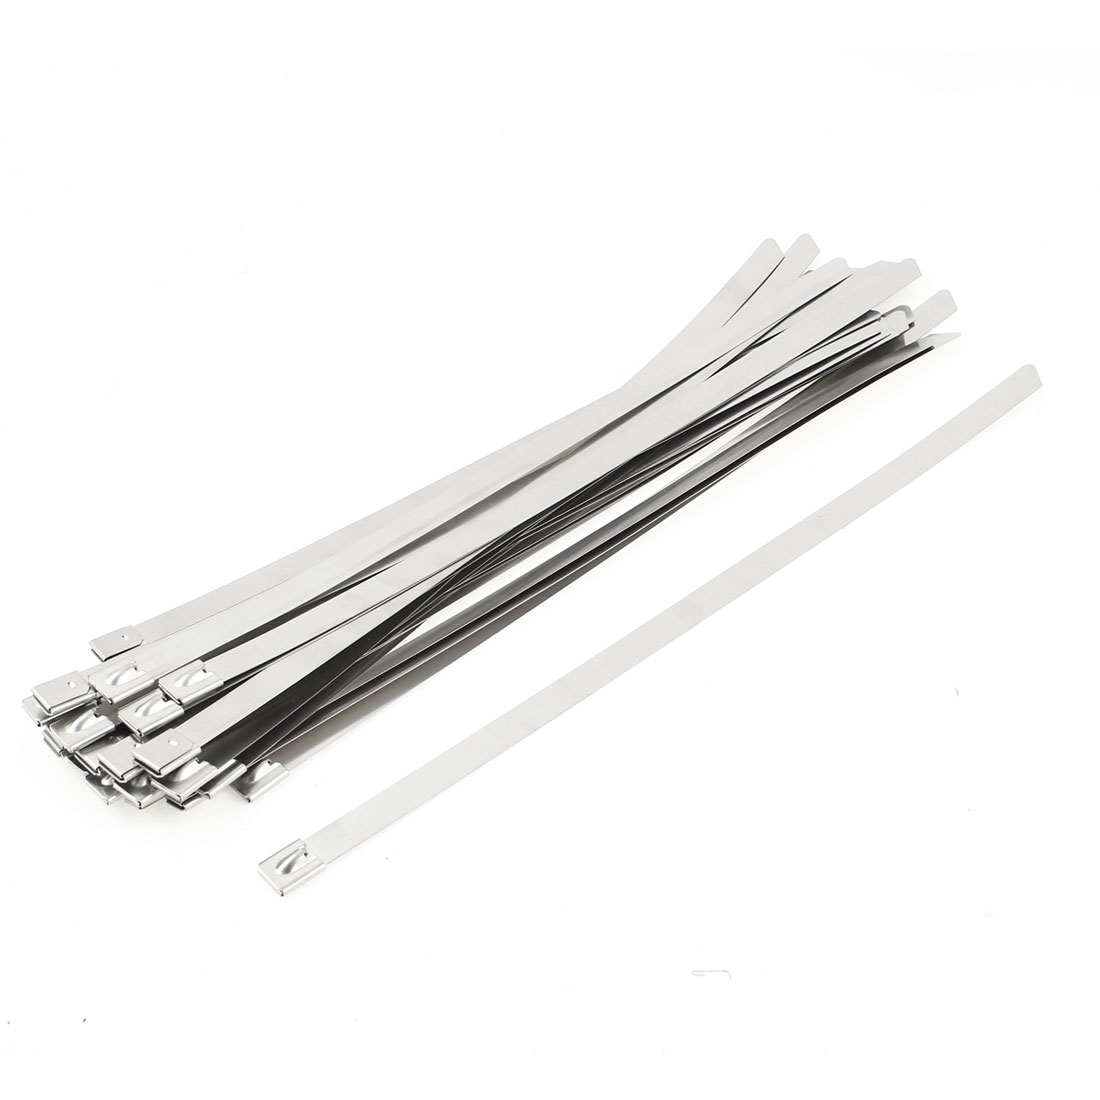 30pcs Strap Clamp Stainless Steel Zip Cable Ties Wrap 12mmx350mm